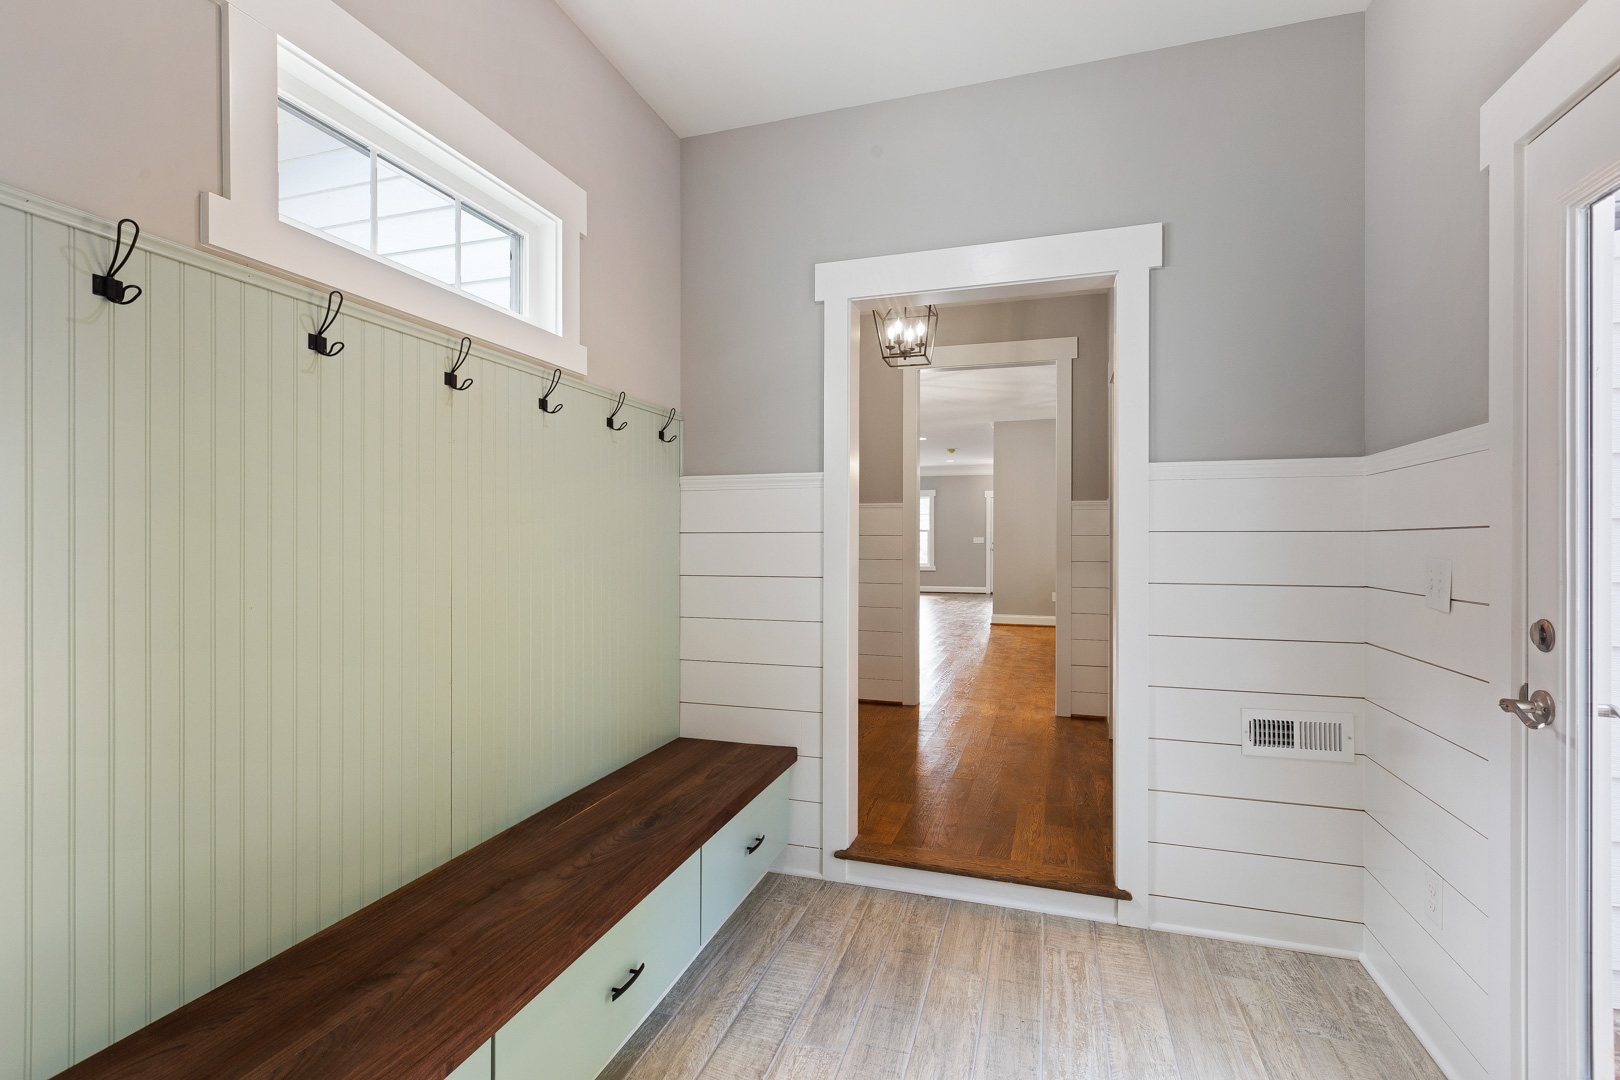 Mudroom with shiplap and built-in storage